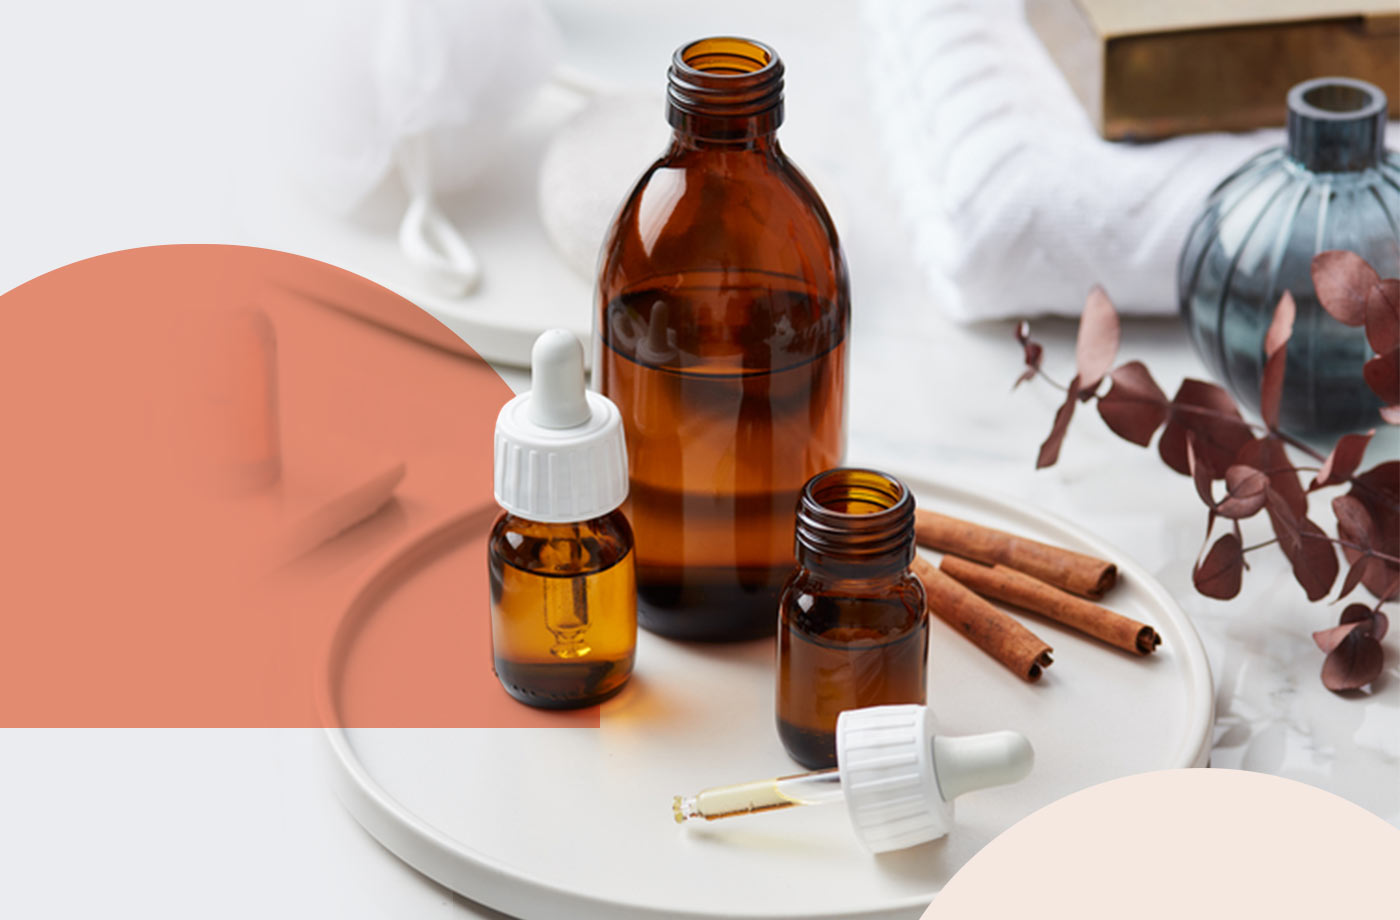 Thumbnail for 5 Cinnamon Essential Oil Benefits That can Spice up Your Life (if Used Carefully)